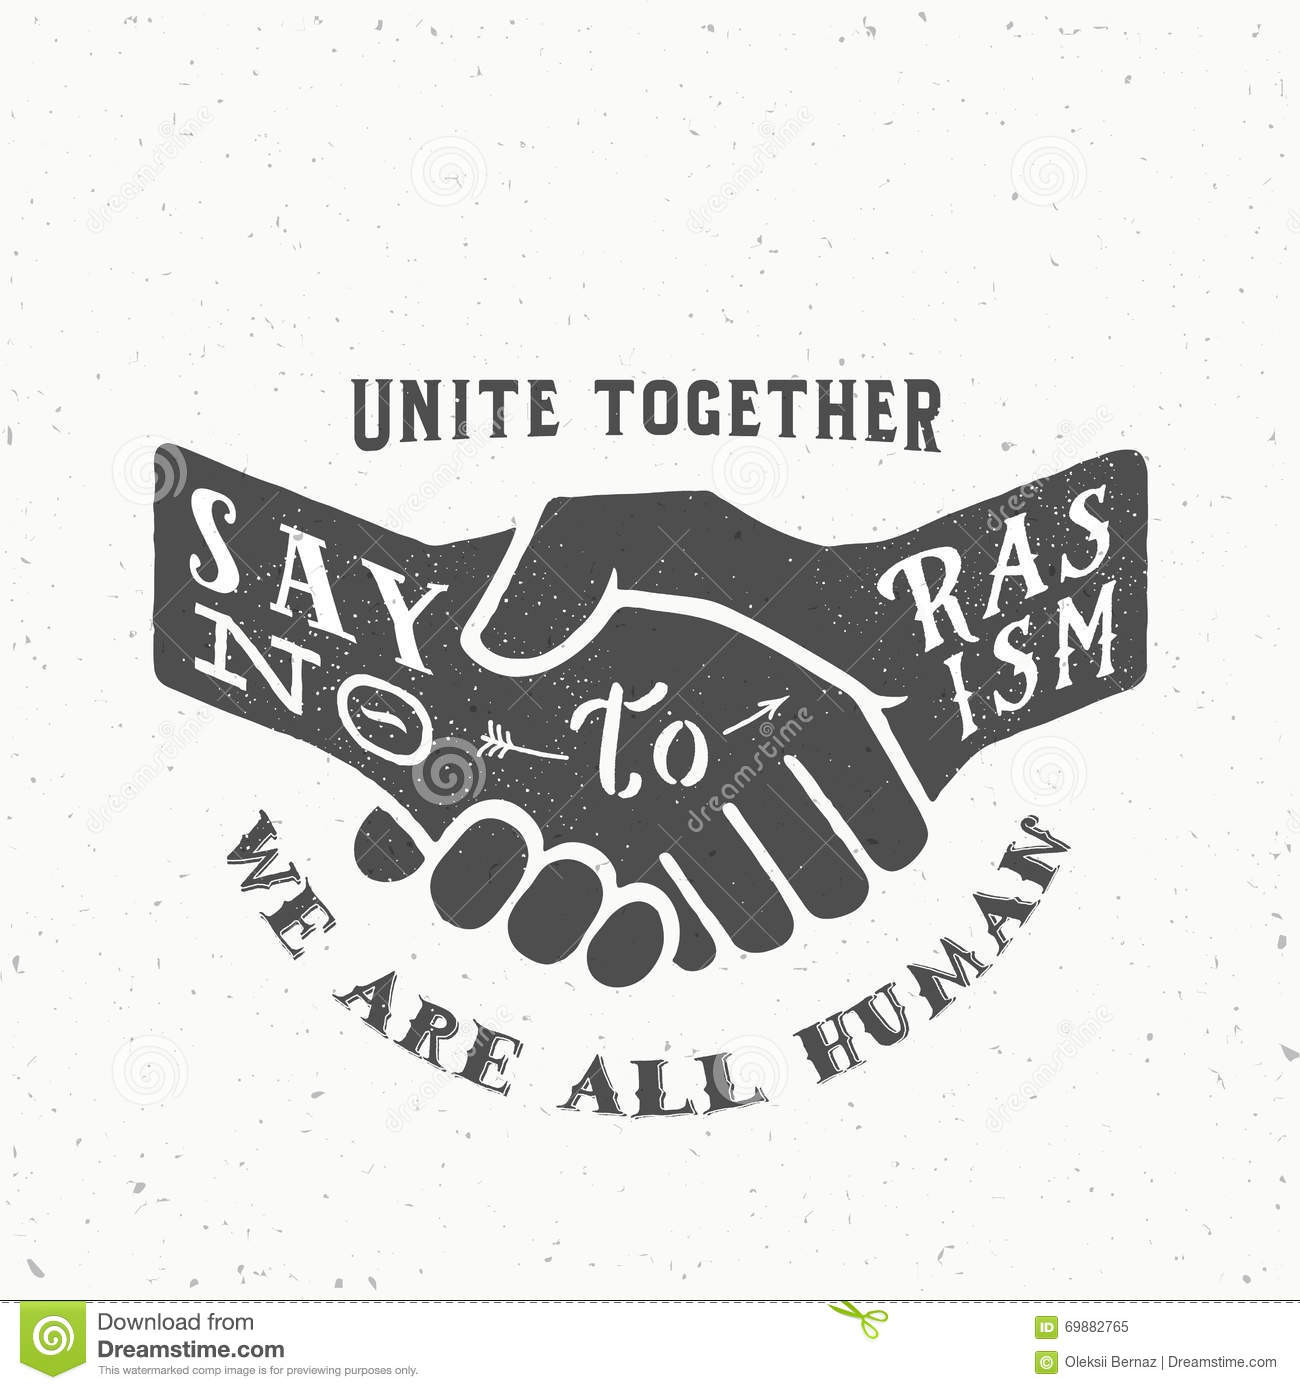 Say no to racism vintage vector handshake silhouette with retro say no to racism vintage vector handshake silhouette with retro typography and shabby textures biocorpaavc Images